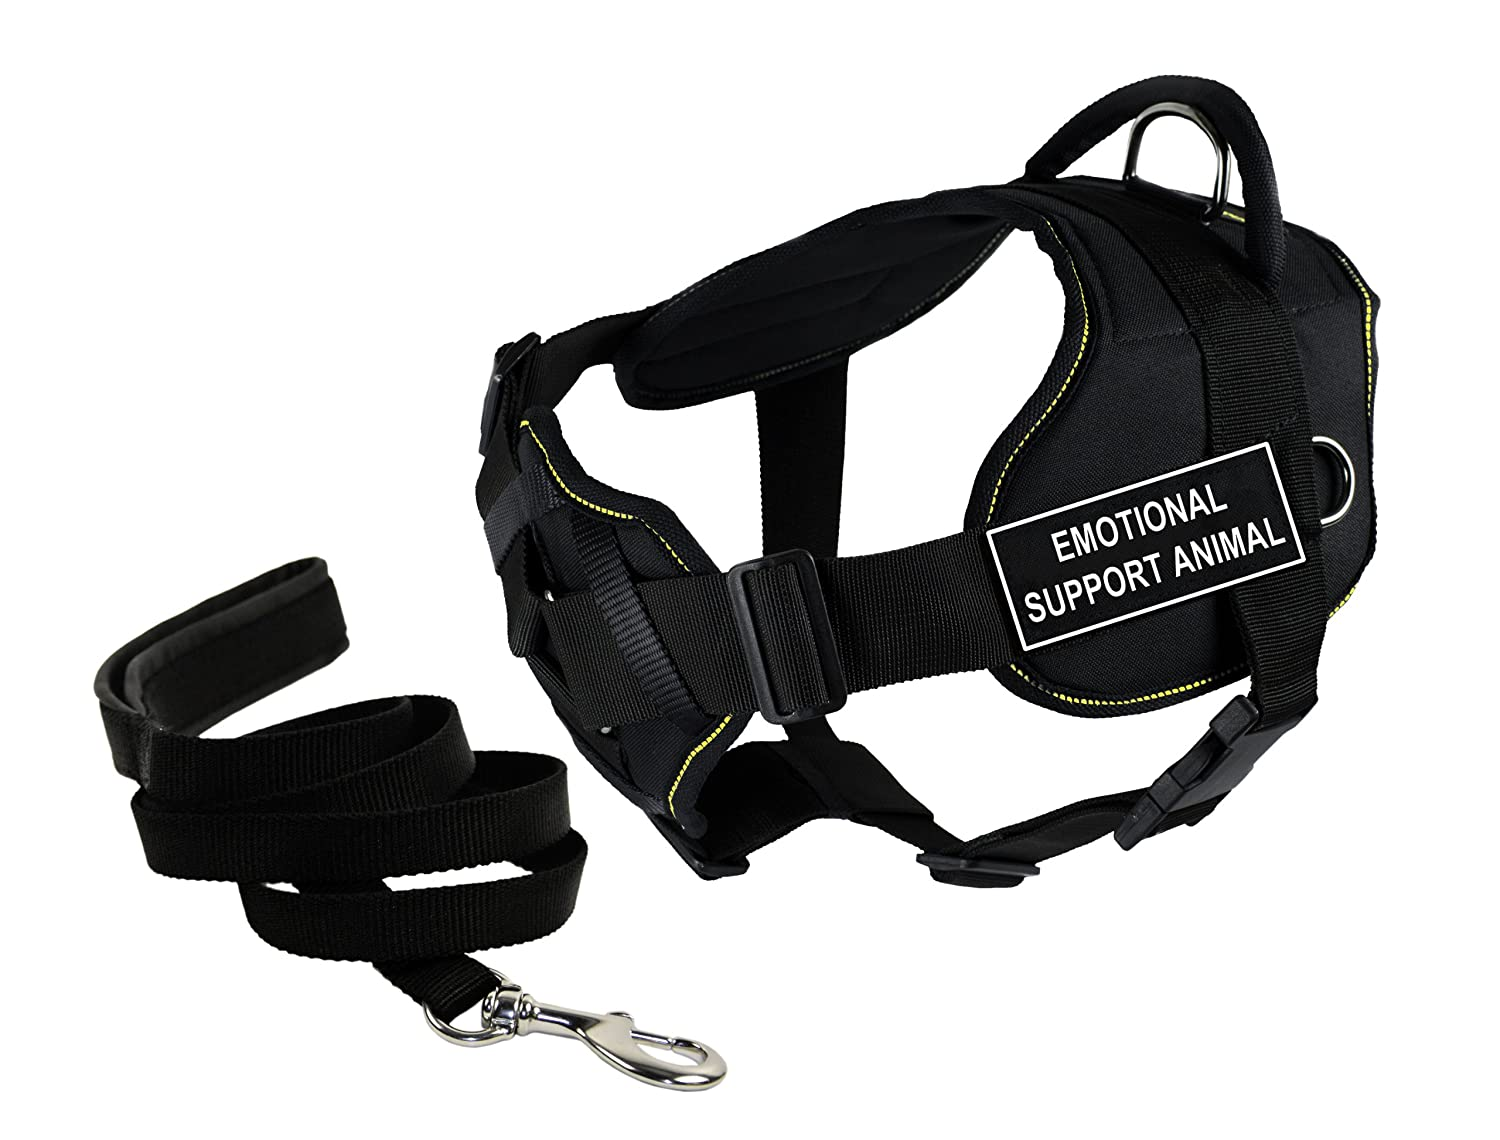 Dean & Tyler's DT Fun Chest Support EMOTIONAL SUPPORT ANIMAL Harness, Large, with 6 ft Padded Puppy Leash.